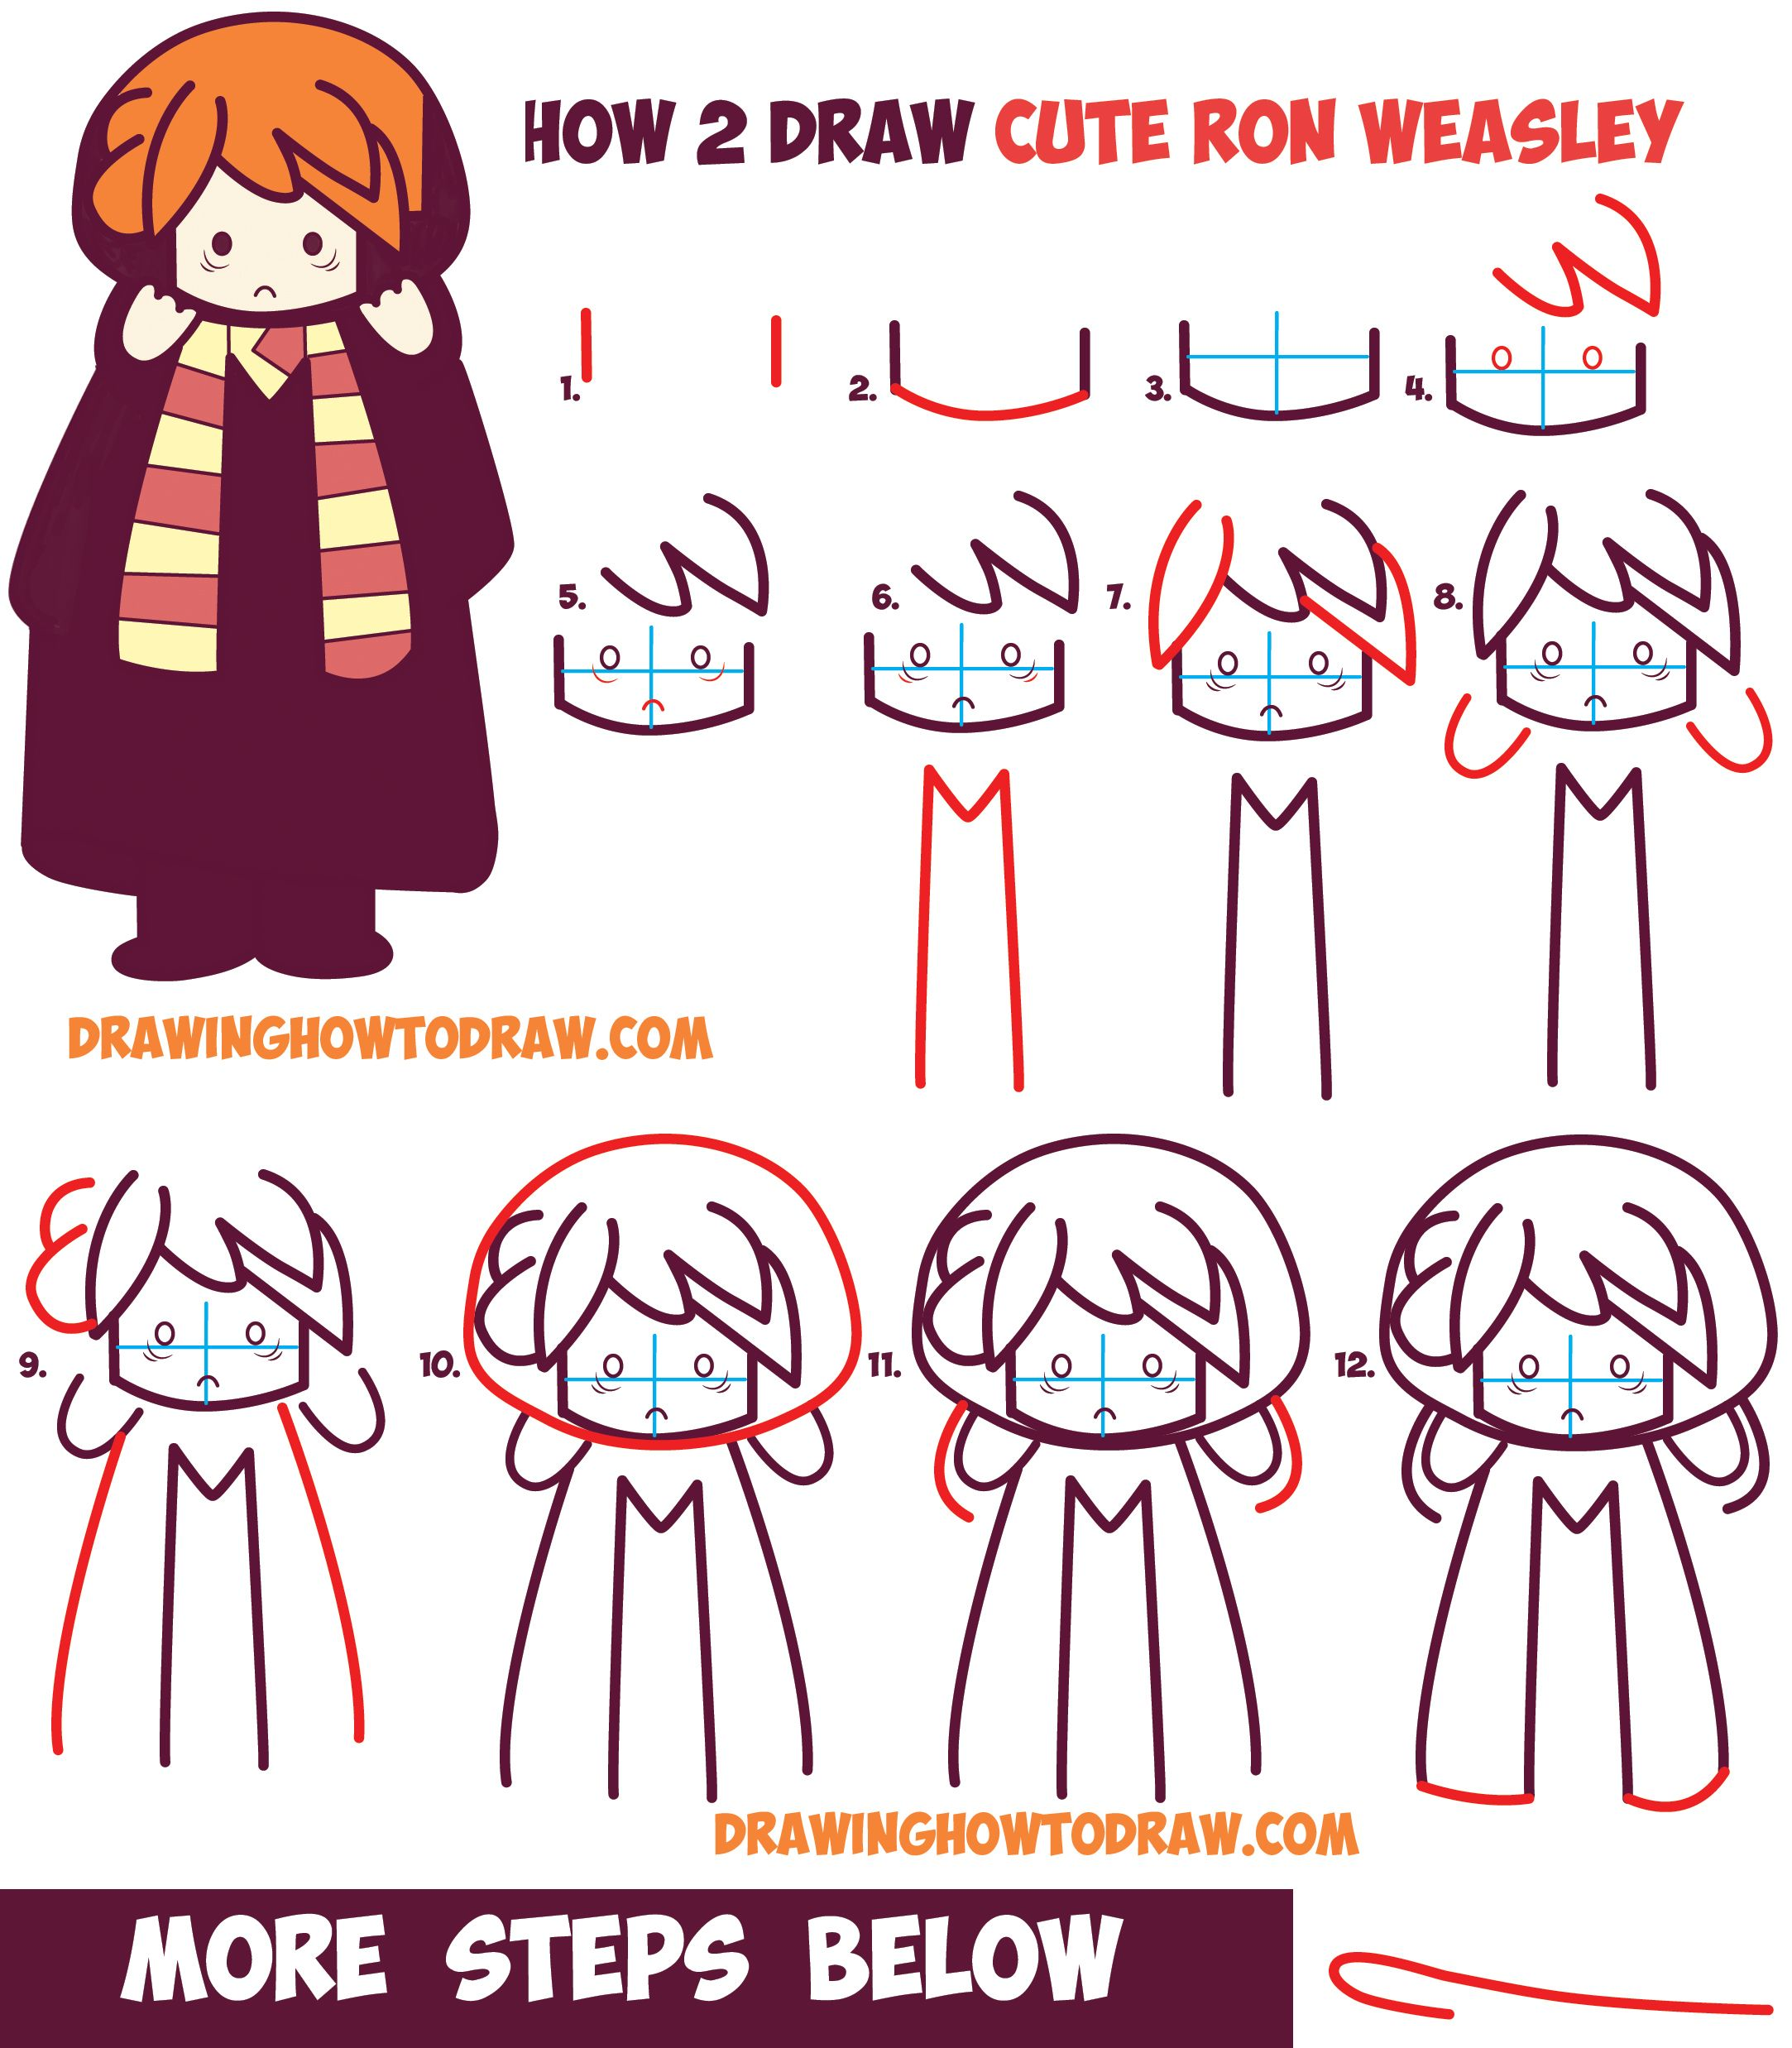 How To Draw Cute Ron Weasley From Harry Potter Chibi